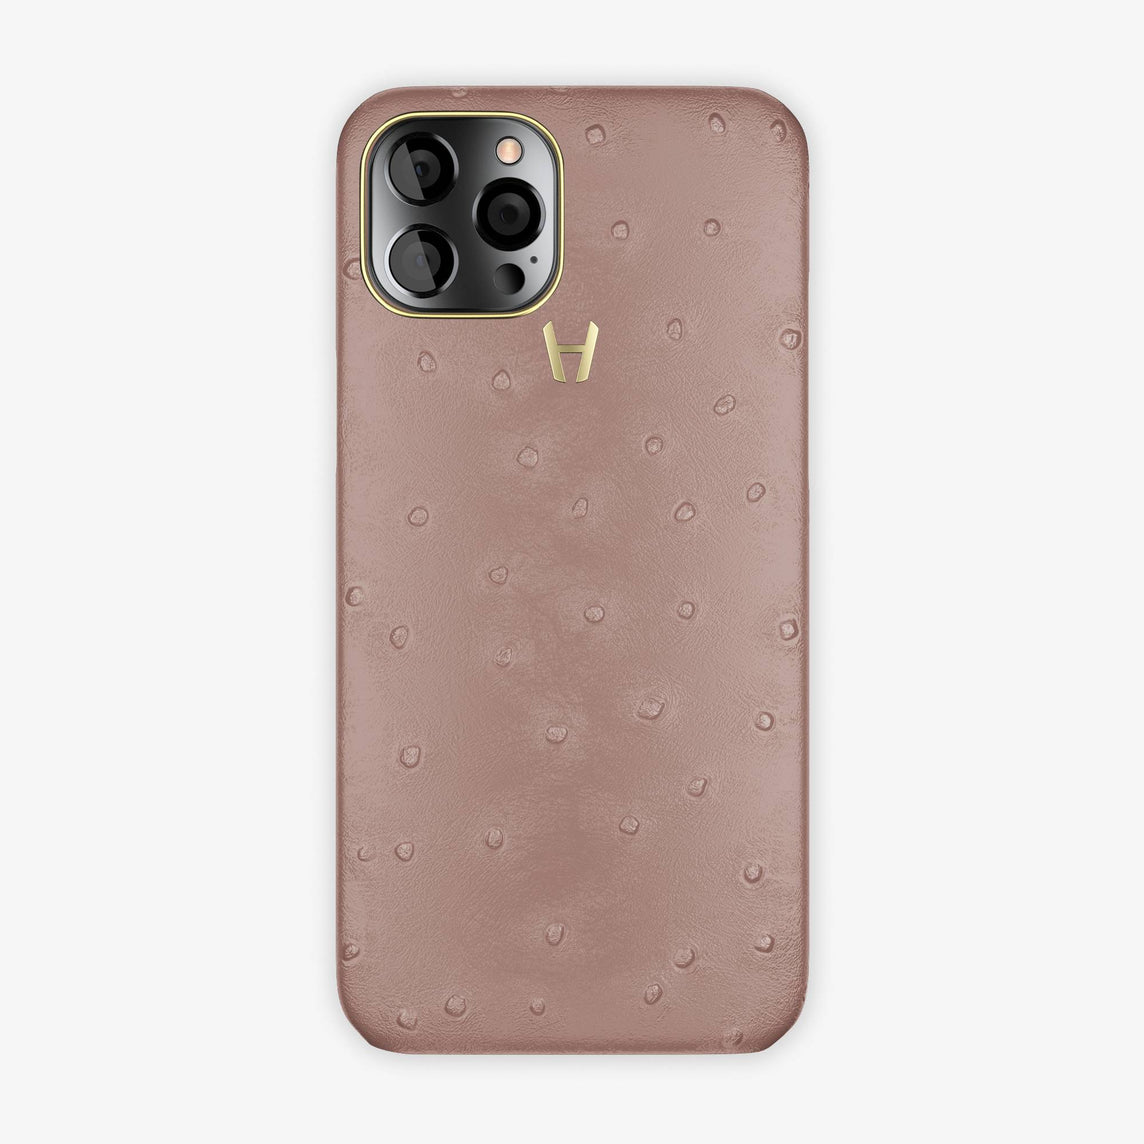 Ostrich Case iPhone 12 Pro Max | Lavande - Yellow Gold